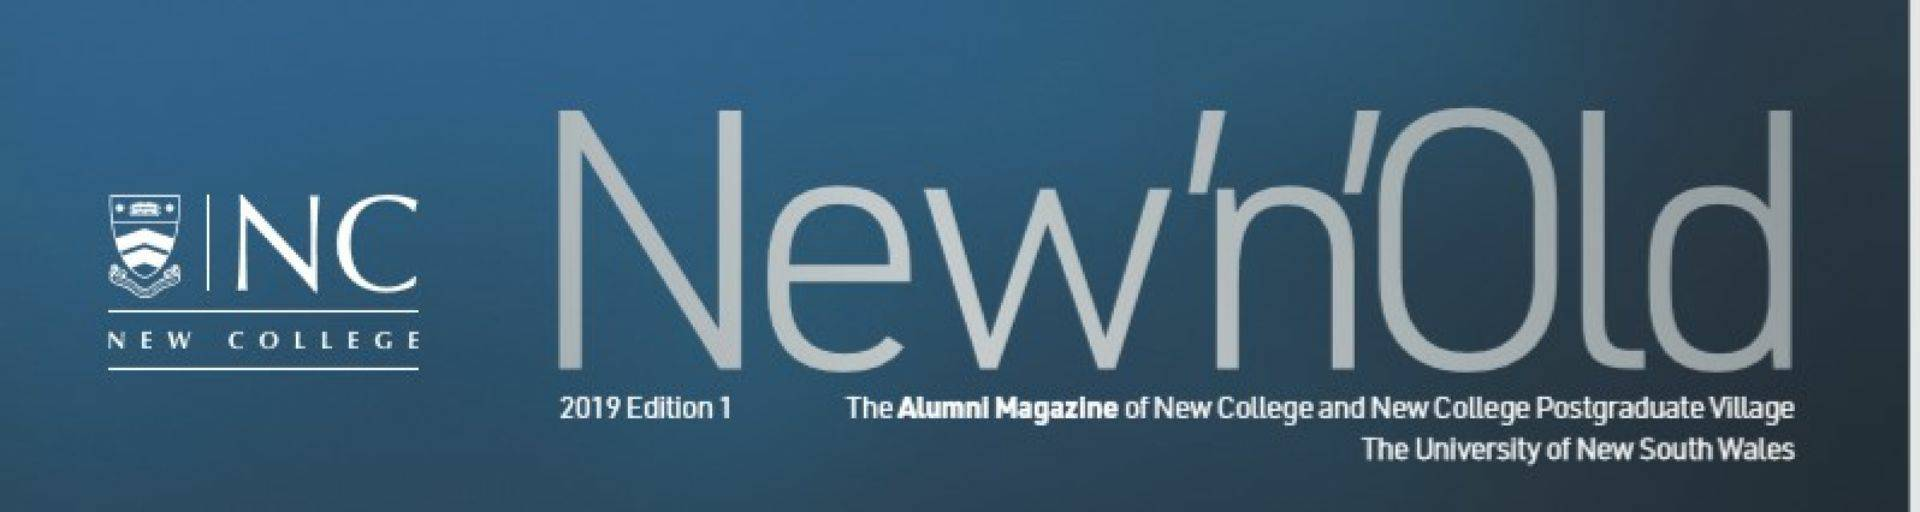 New n old magazine title